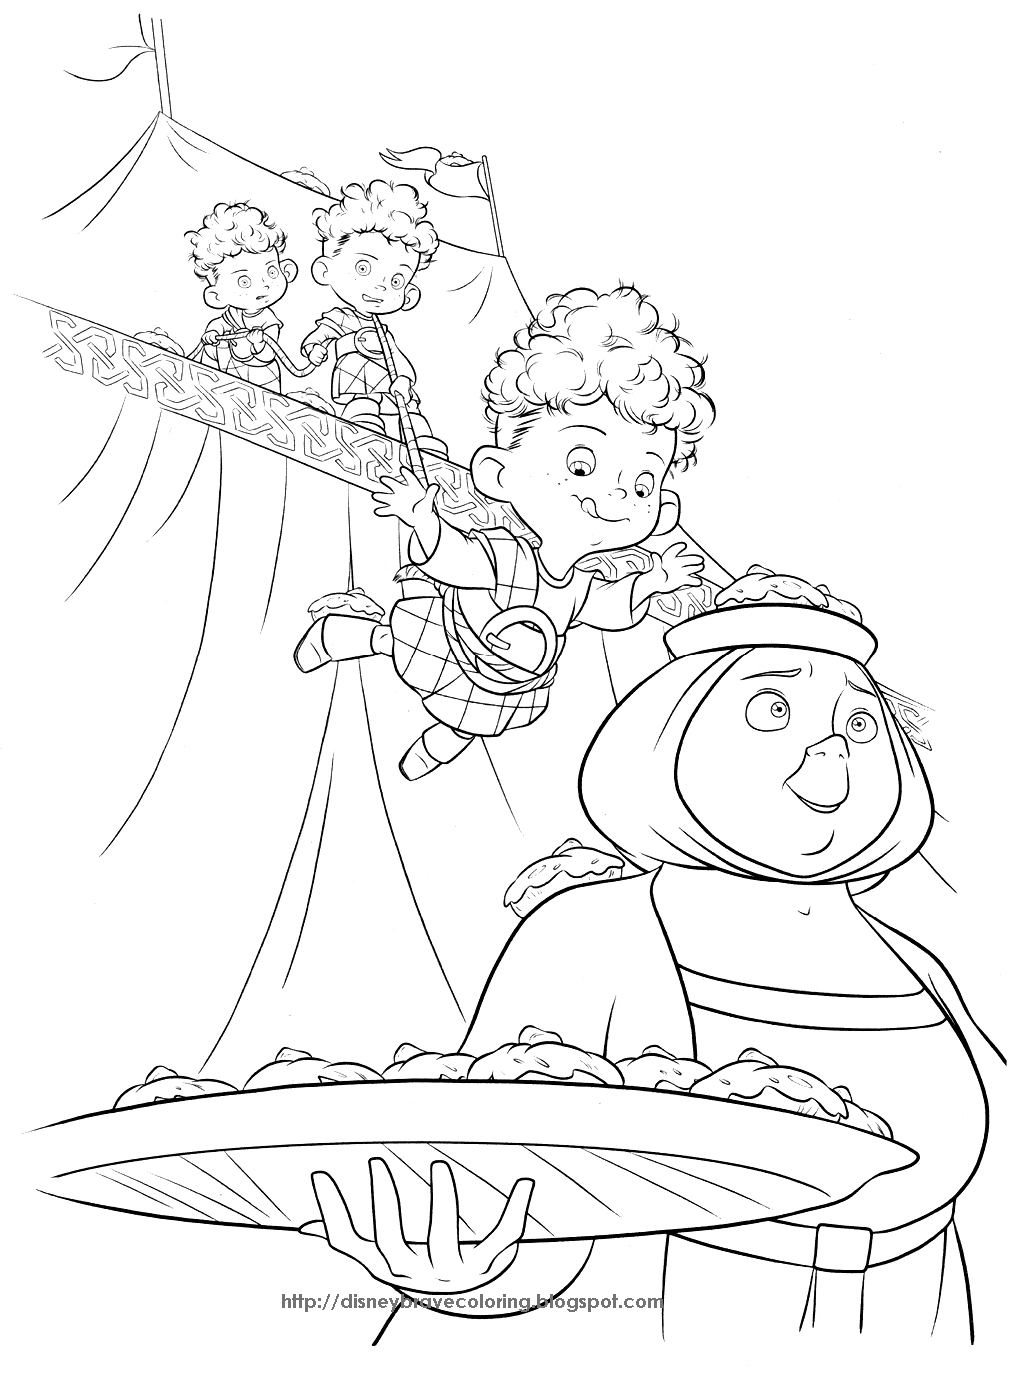 BRAVE MERIDA COLORING PAGES